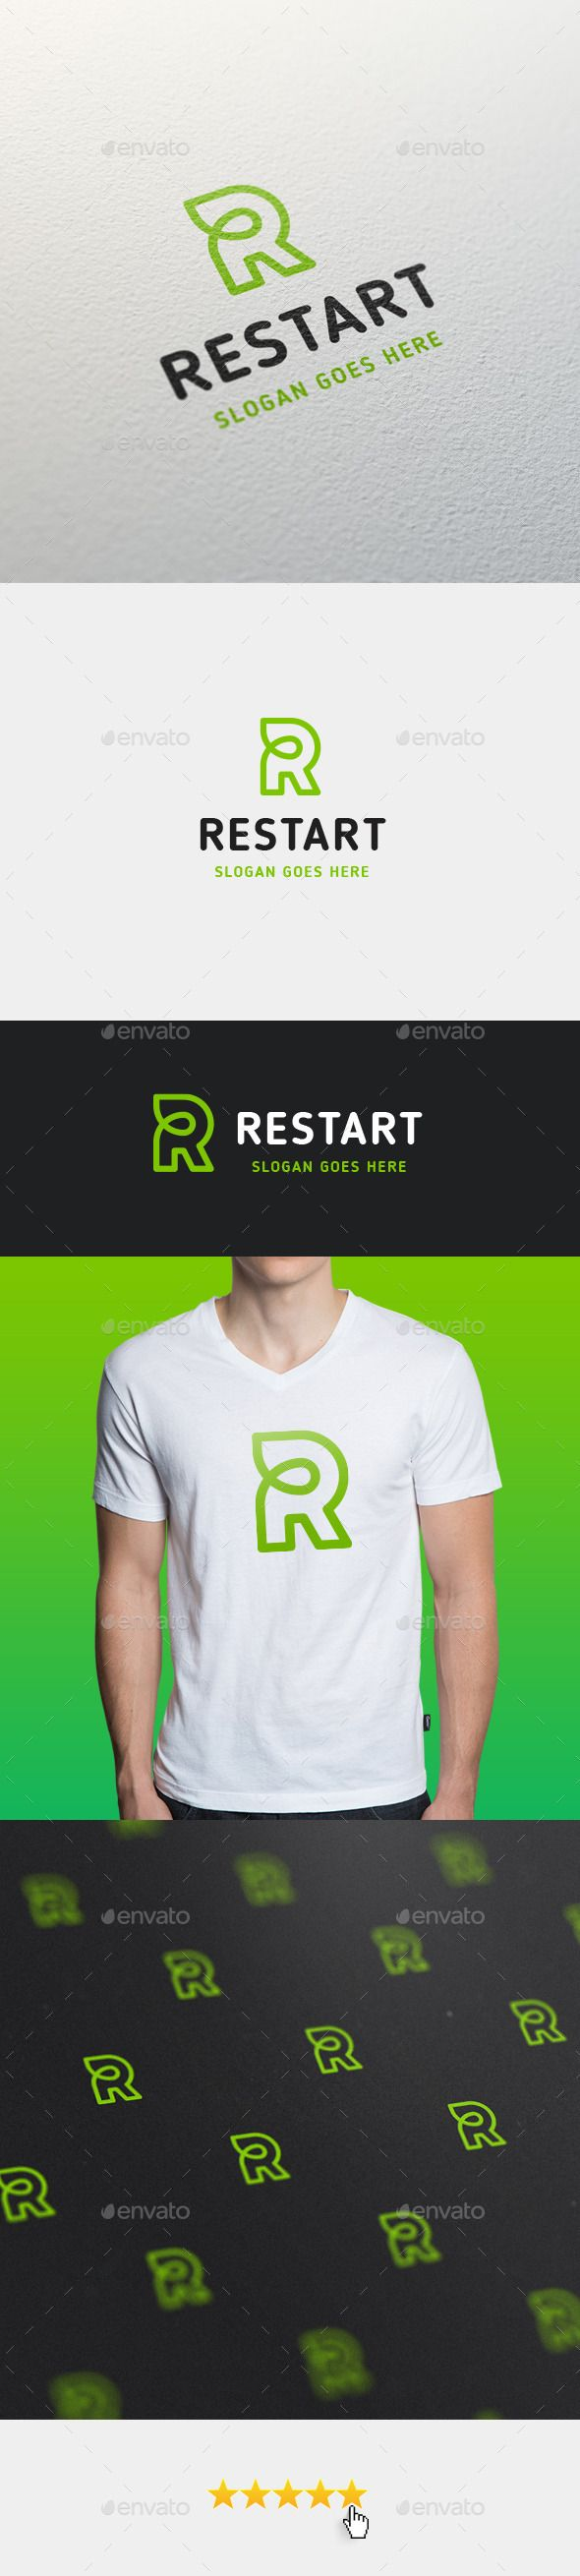 Restart • Letter R Logo Design Template - Letters Logo Design Template Vector EPS, AI Illustrator. Download here: https://graphicriver.net/item/restart-letter-r-logo-template/11422827?ref=yinkira